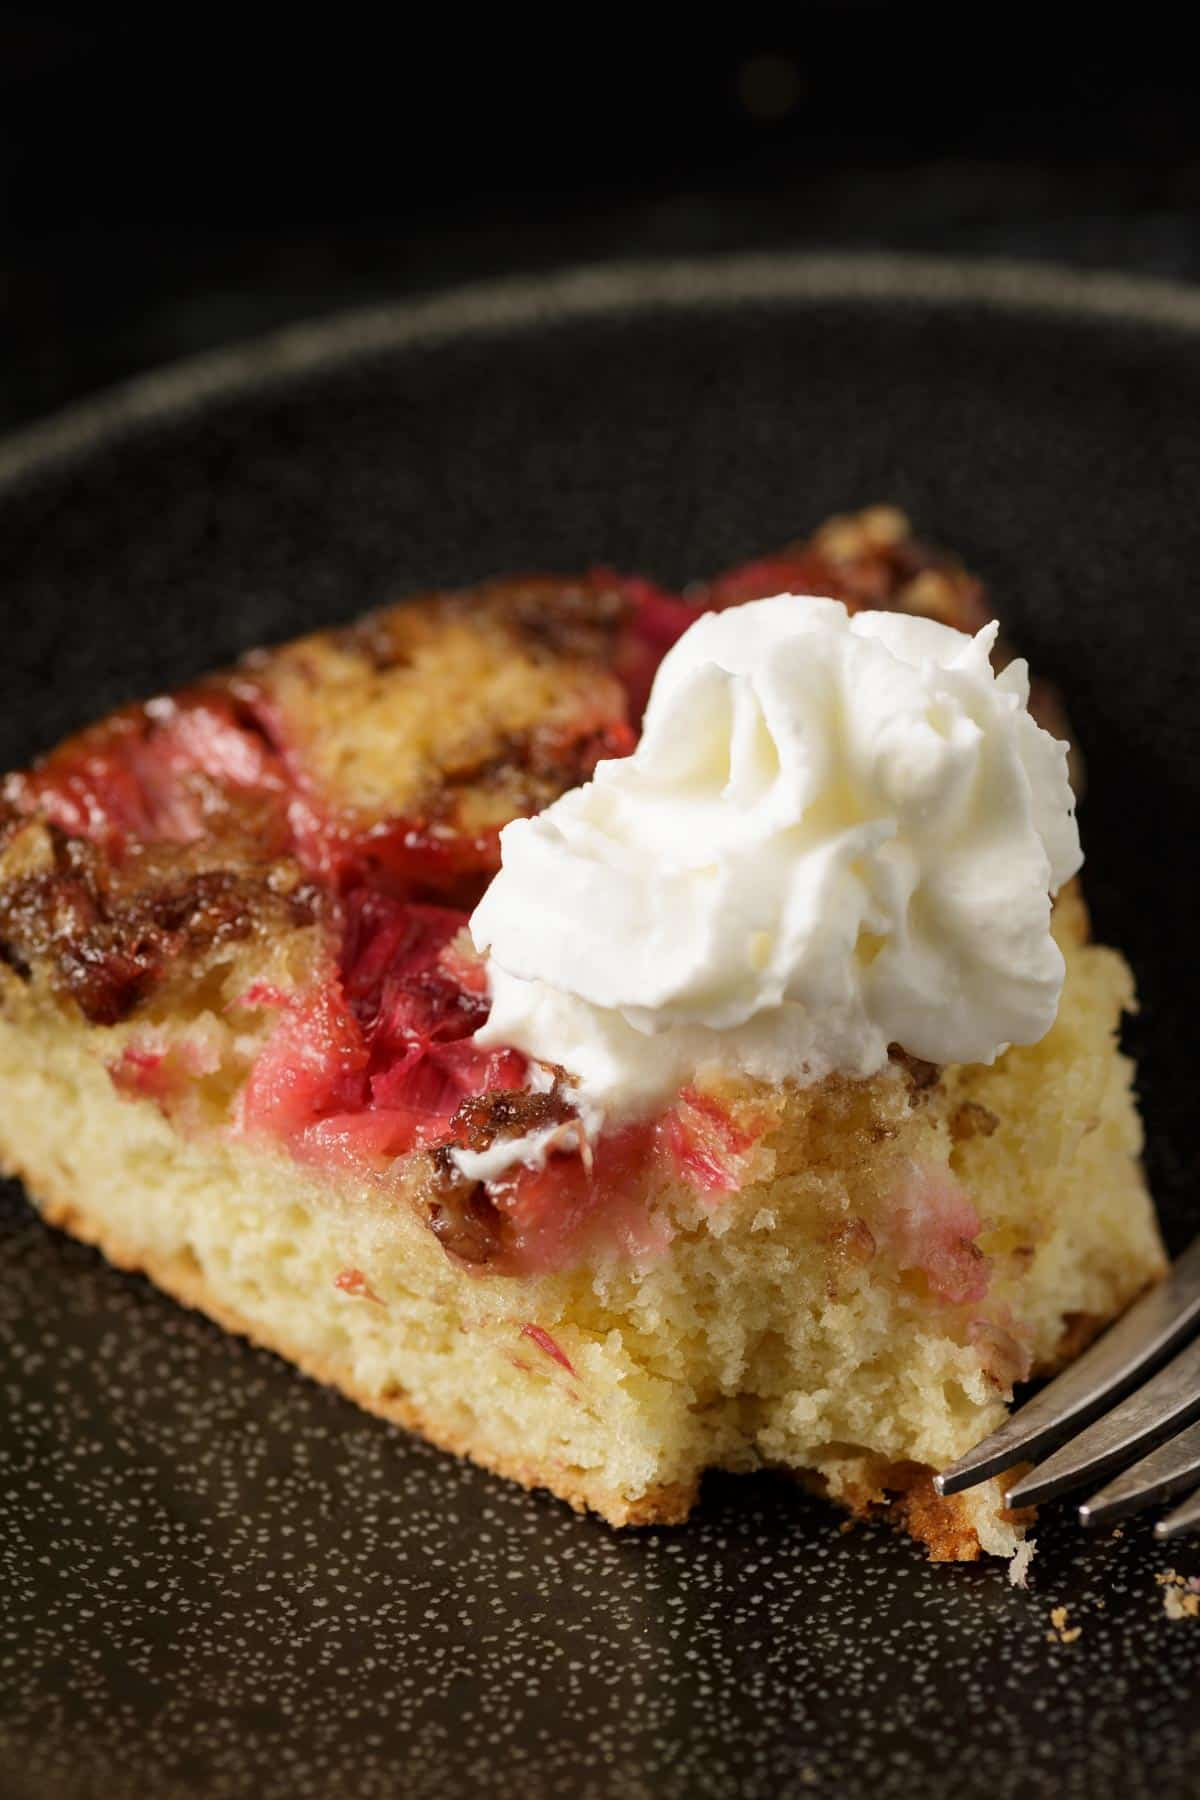 A slice of rhubarb upside down cake with whipped cream on top